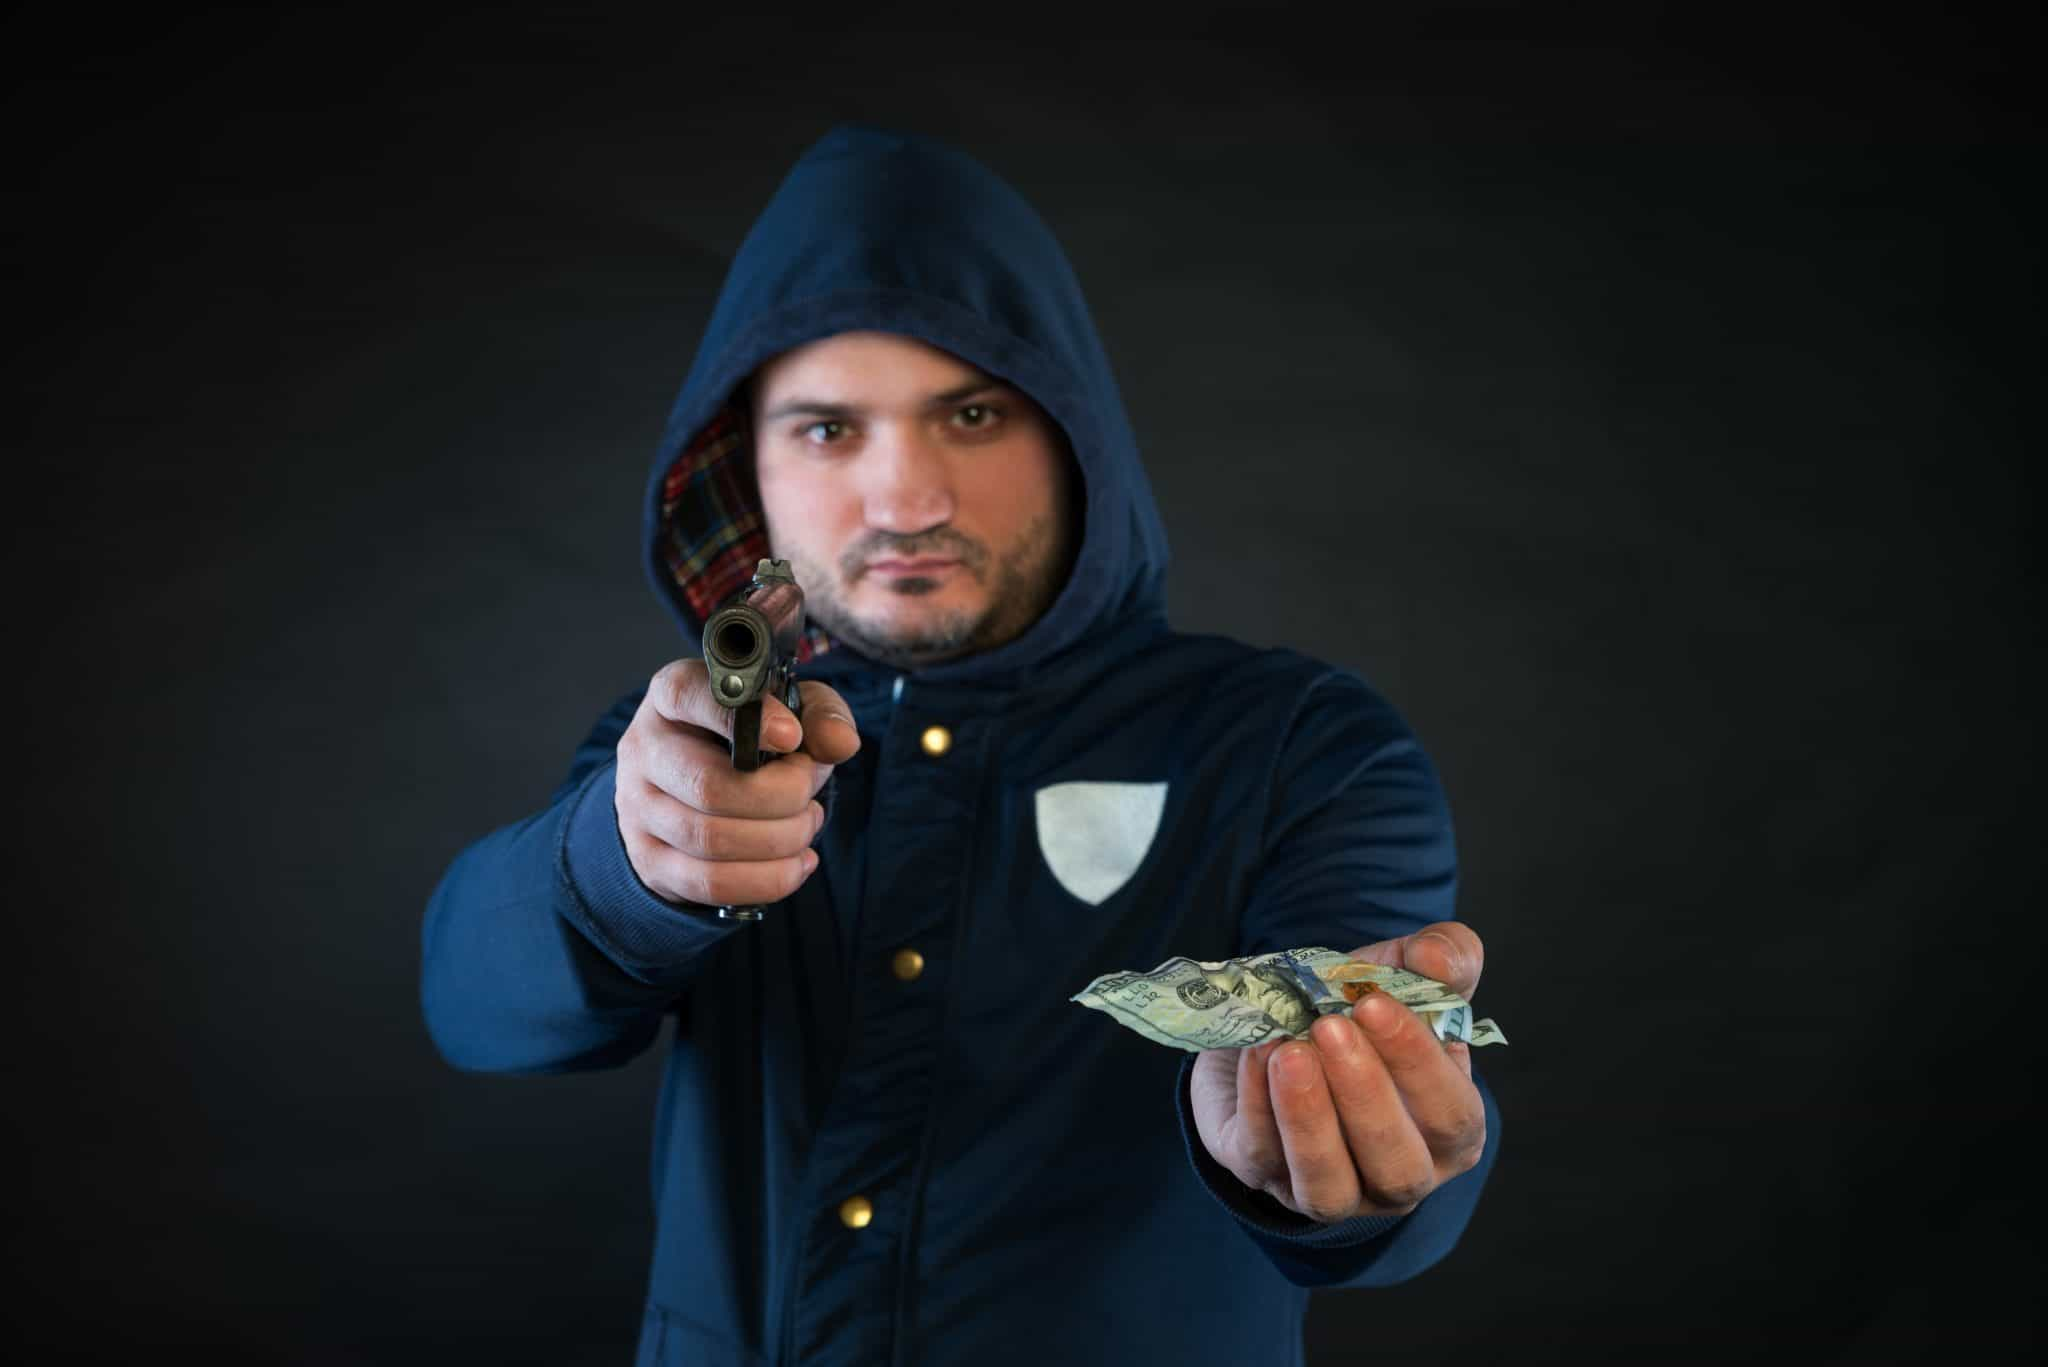 A person in a hoodie is aiming and holding the other hand with the dollar note